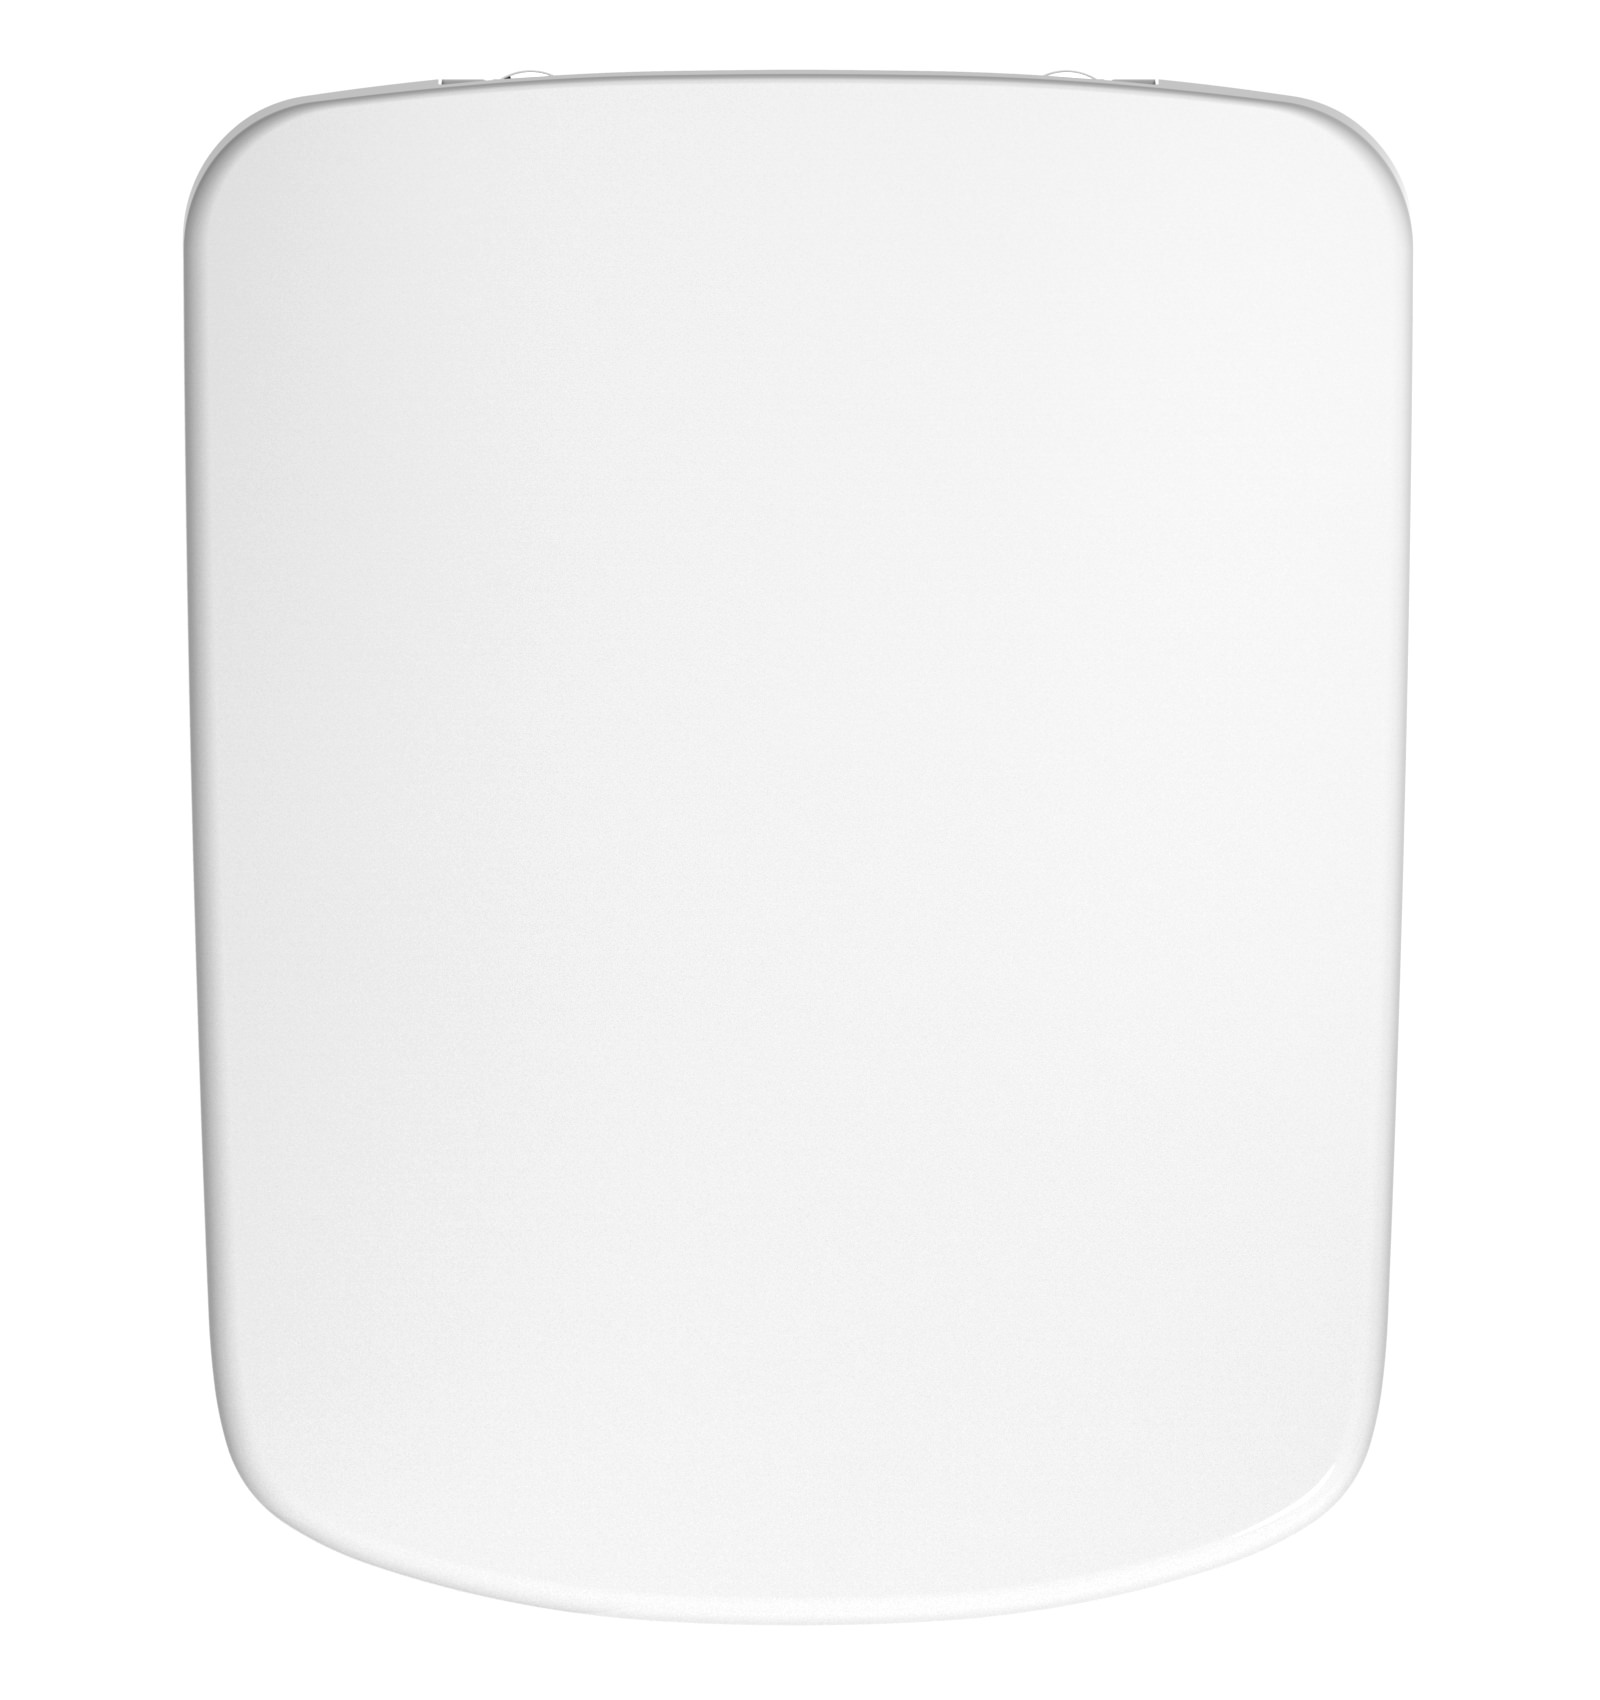 Twyford E100 Square Toilet Seat And Cover With Metal Top Fix Hinge Image